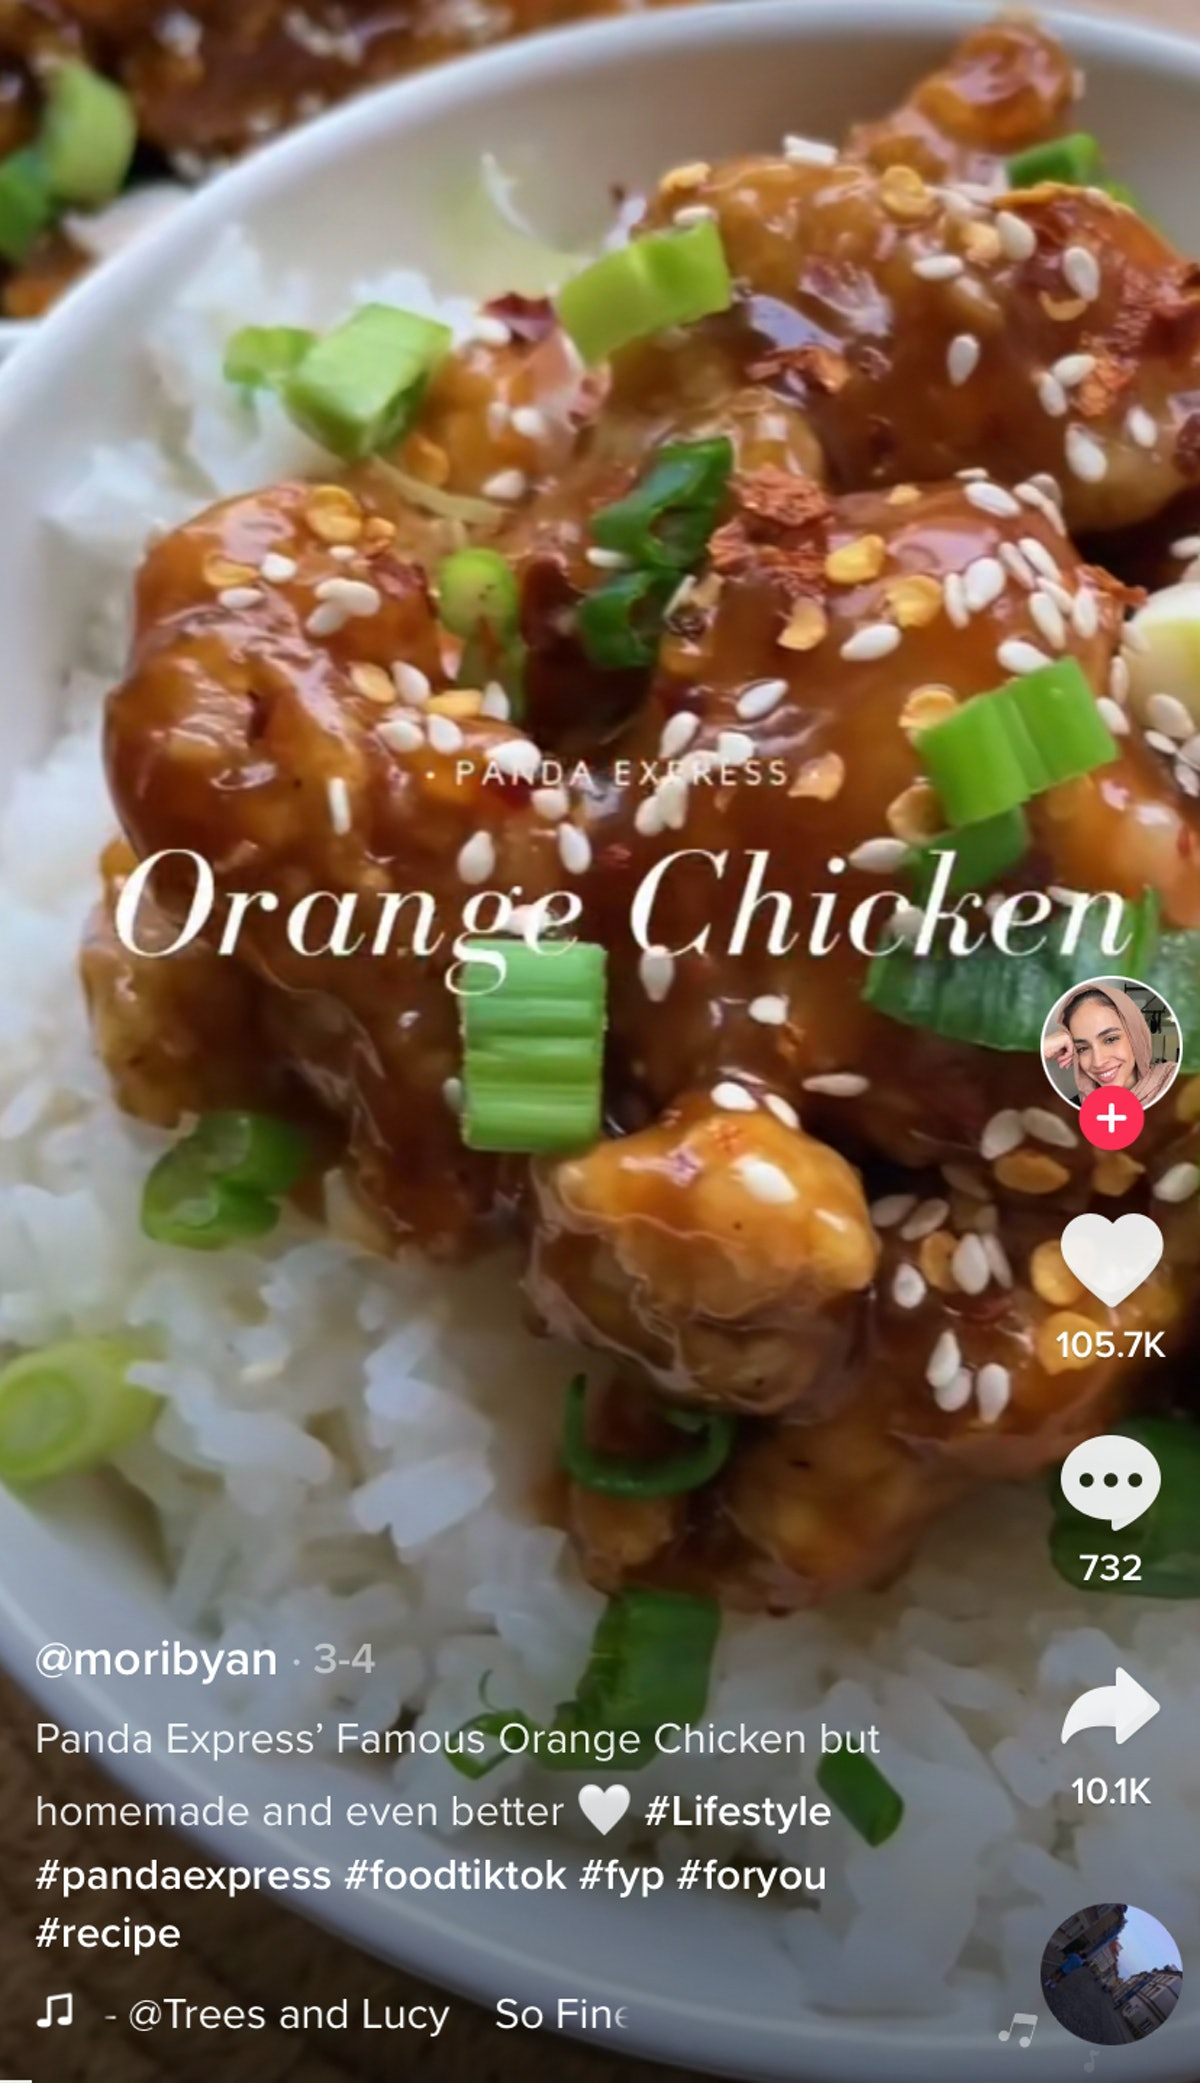 A plate of Panda Express-inspired orange chicken from TikTok sits on a table.